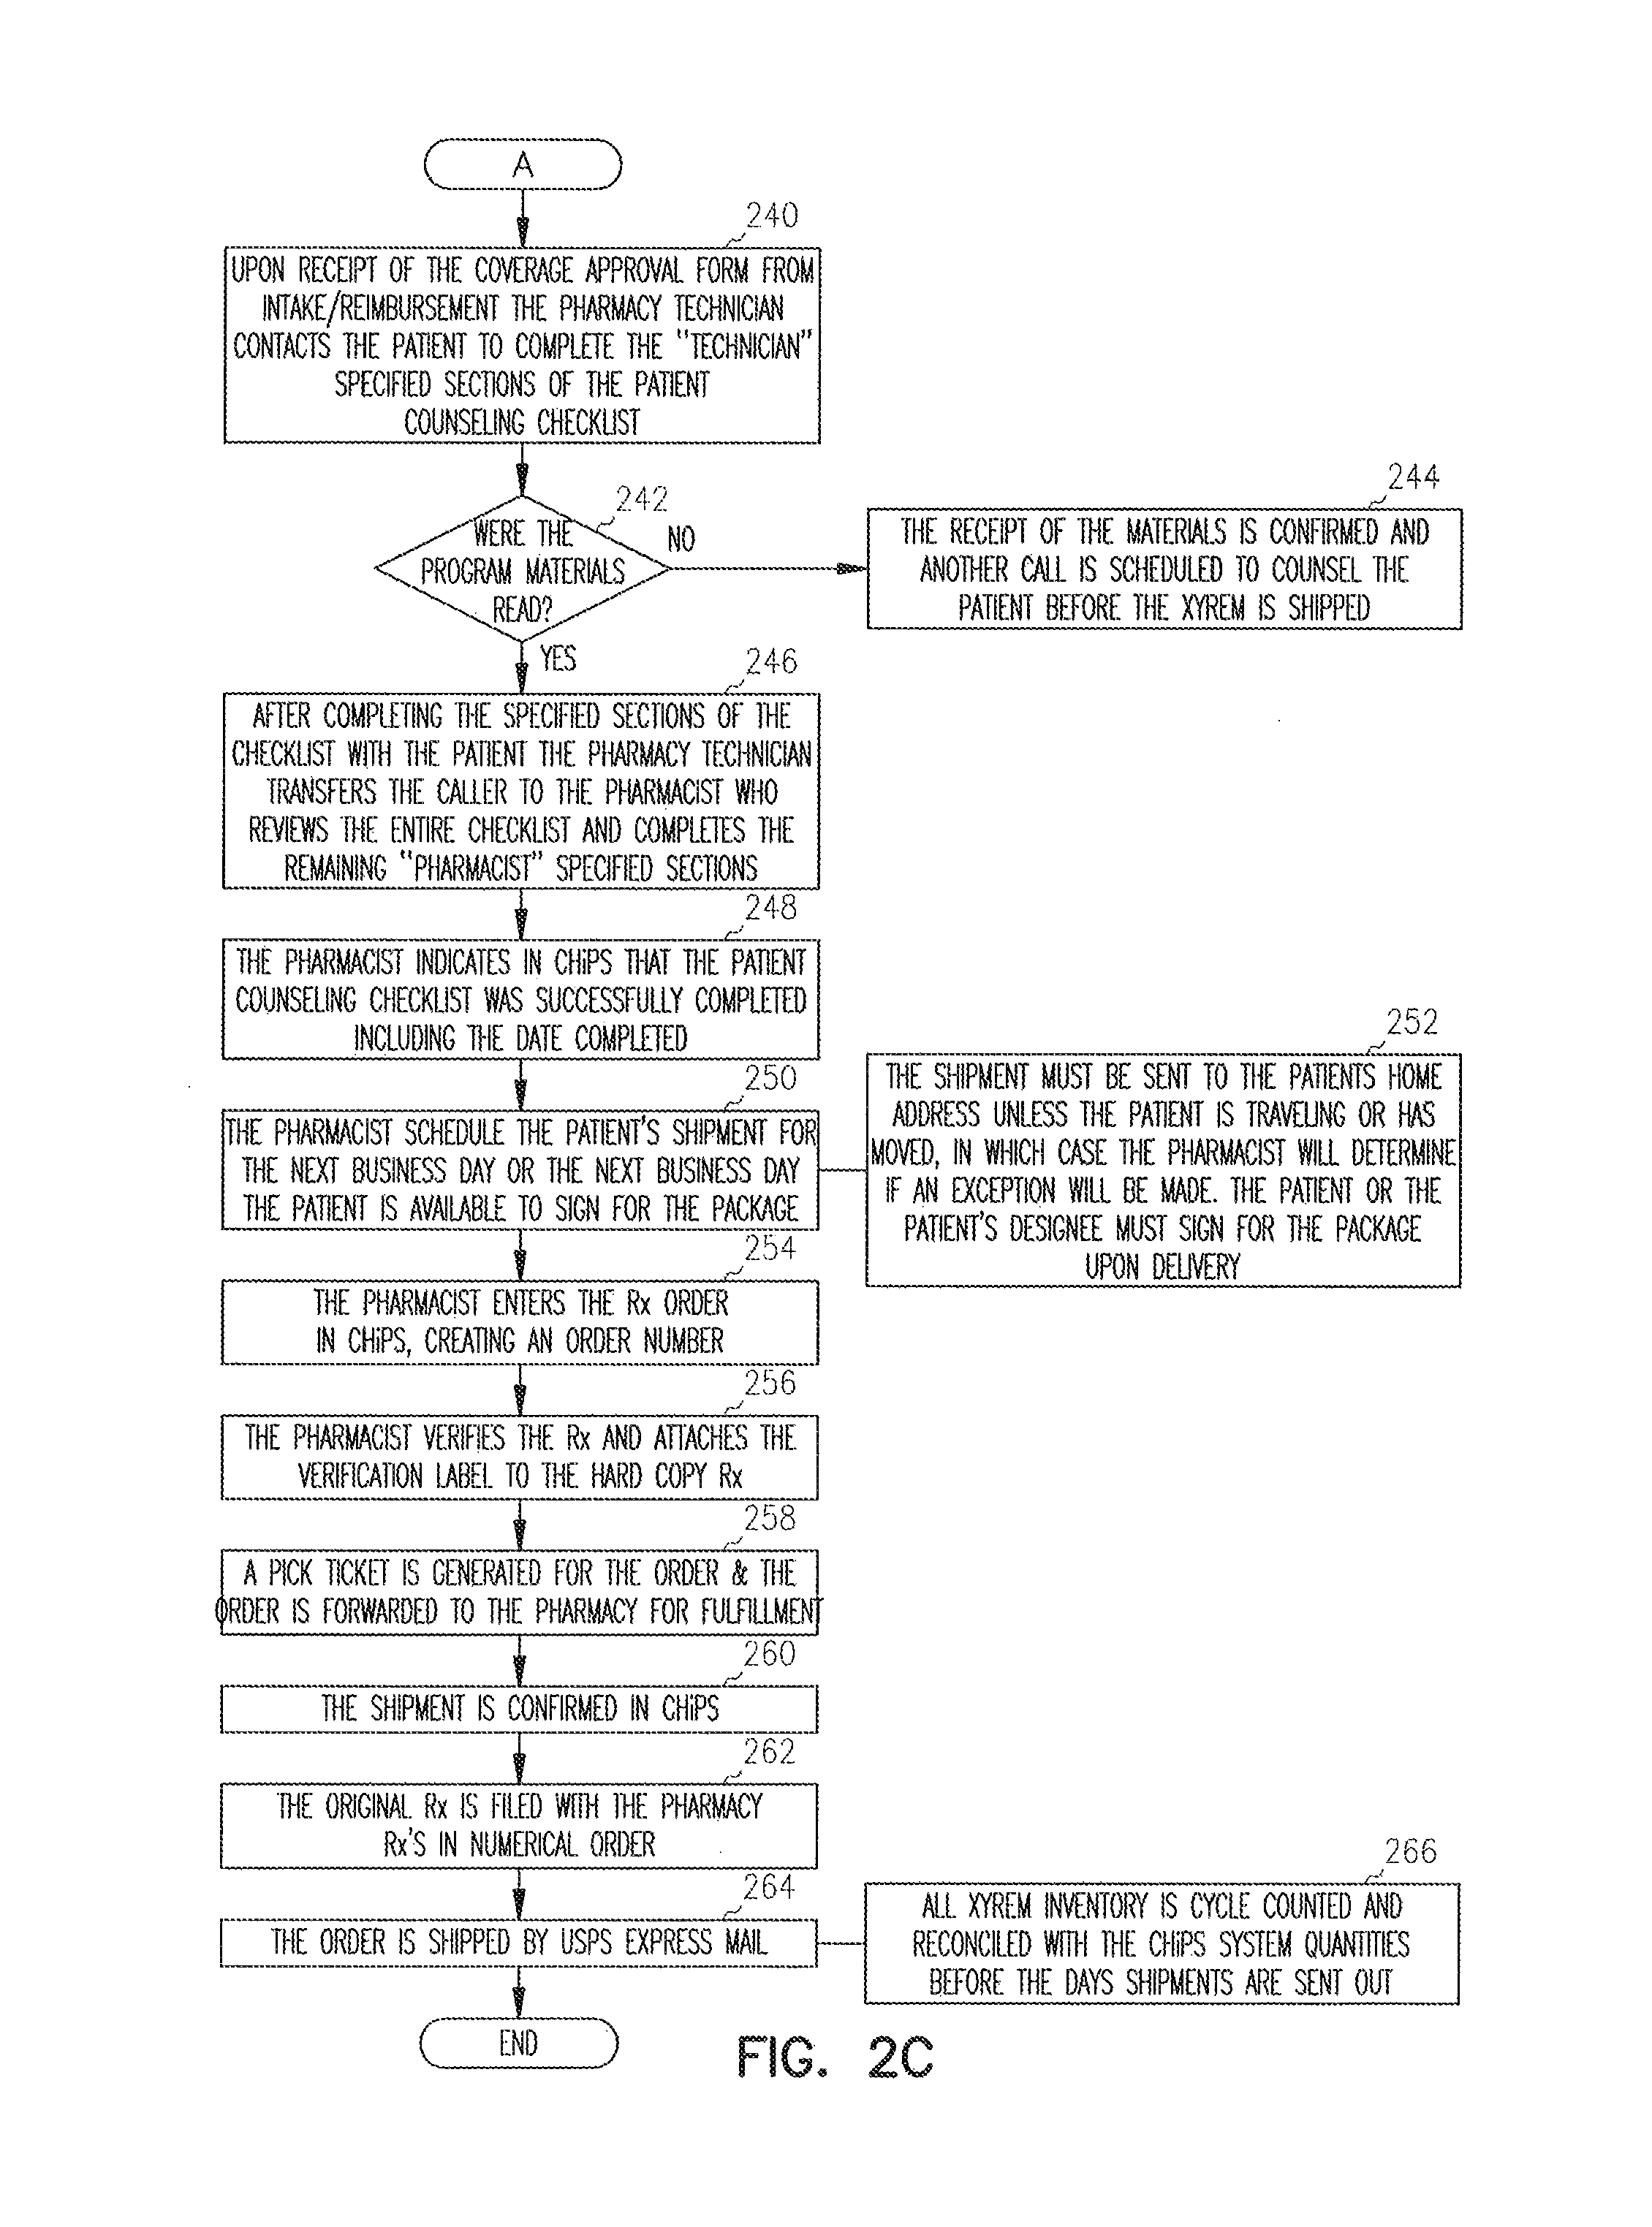 Make An Invoice Template Word Patent Us  Sensitive Drug Distribution System And Method  Automobile Invoice Price Word with Filling Out An Invoice Word Patent Drawing How To Prepare An Invoice For Payment Excel